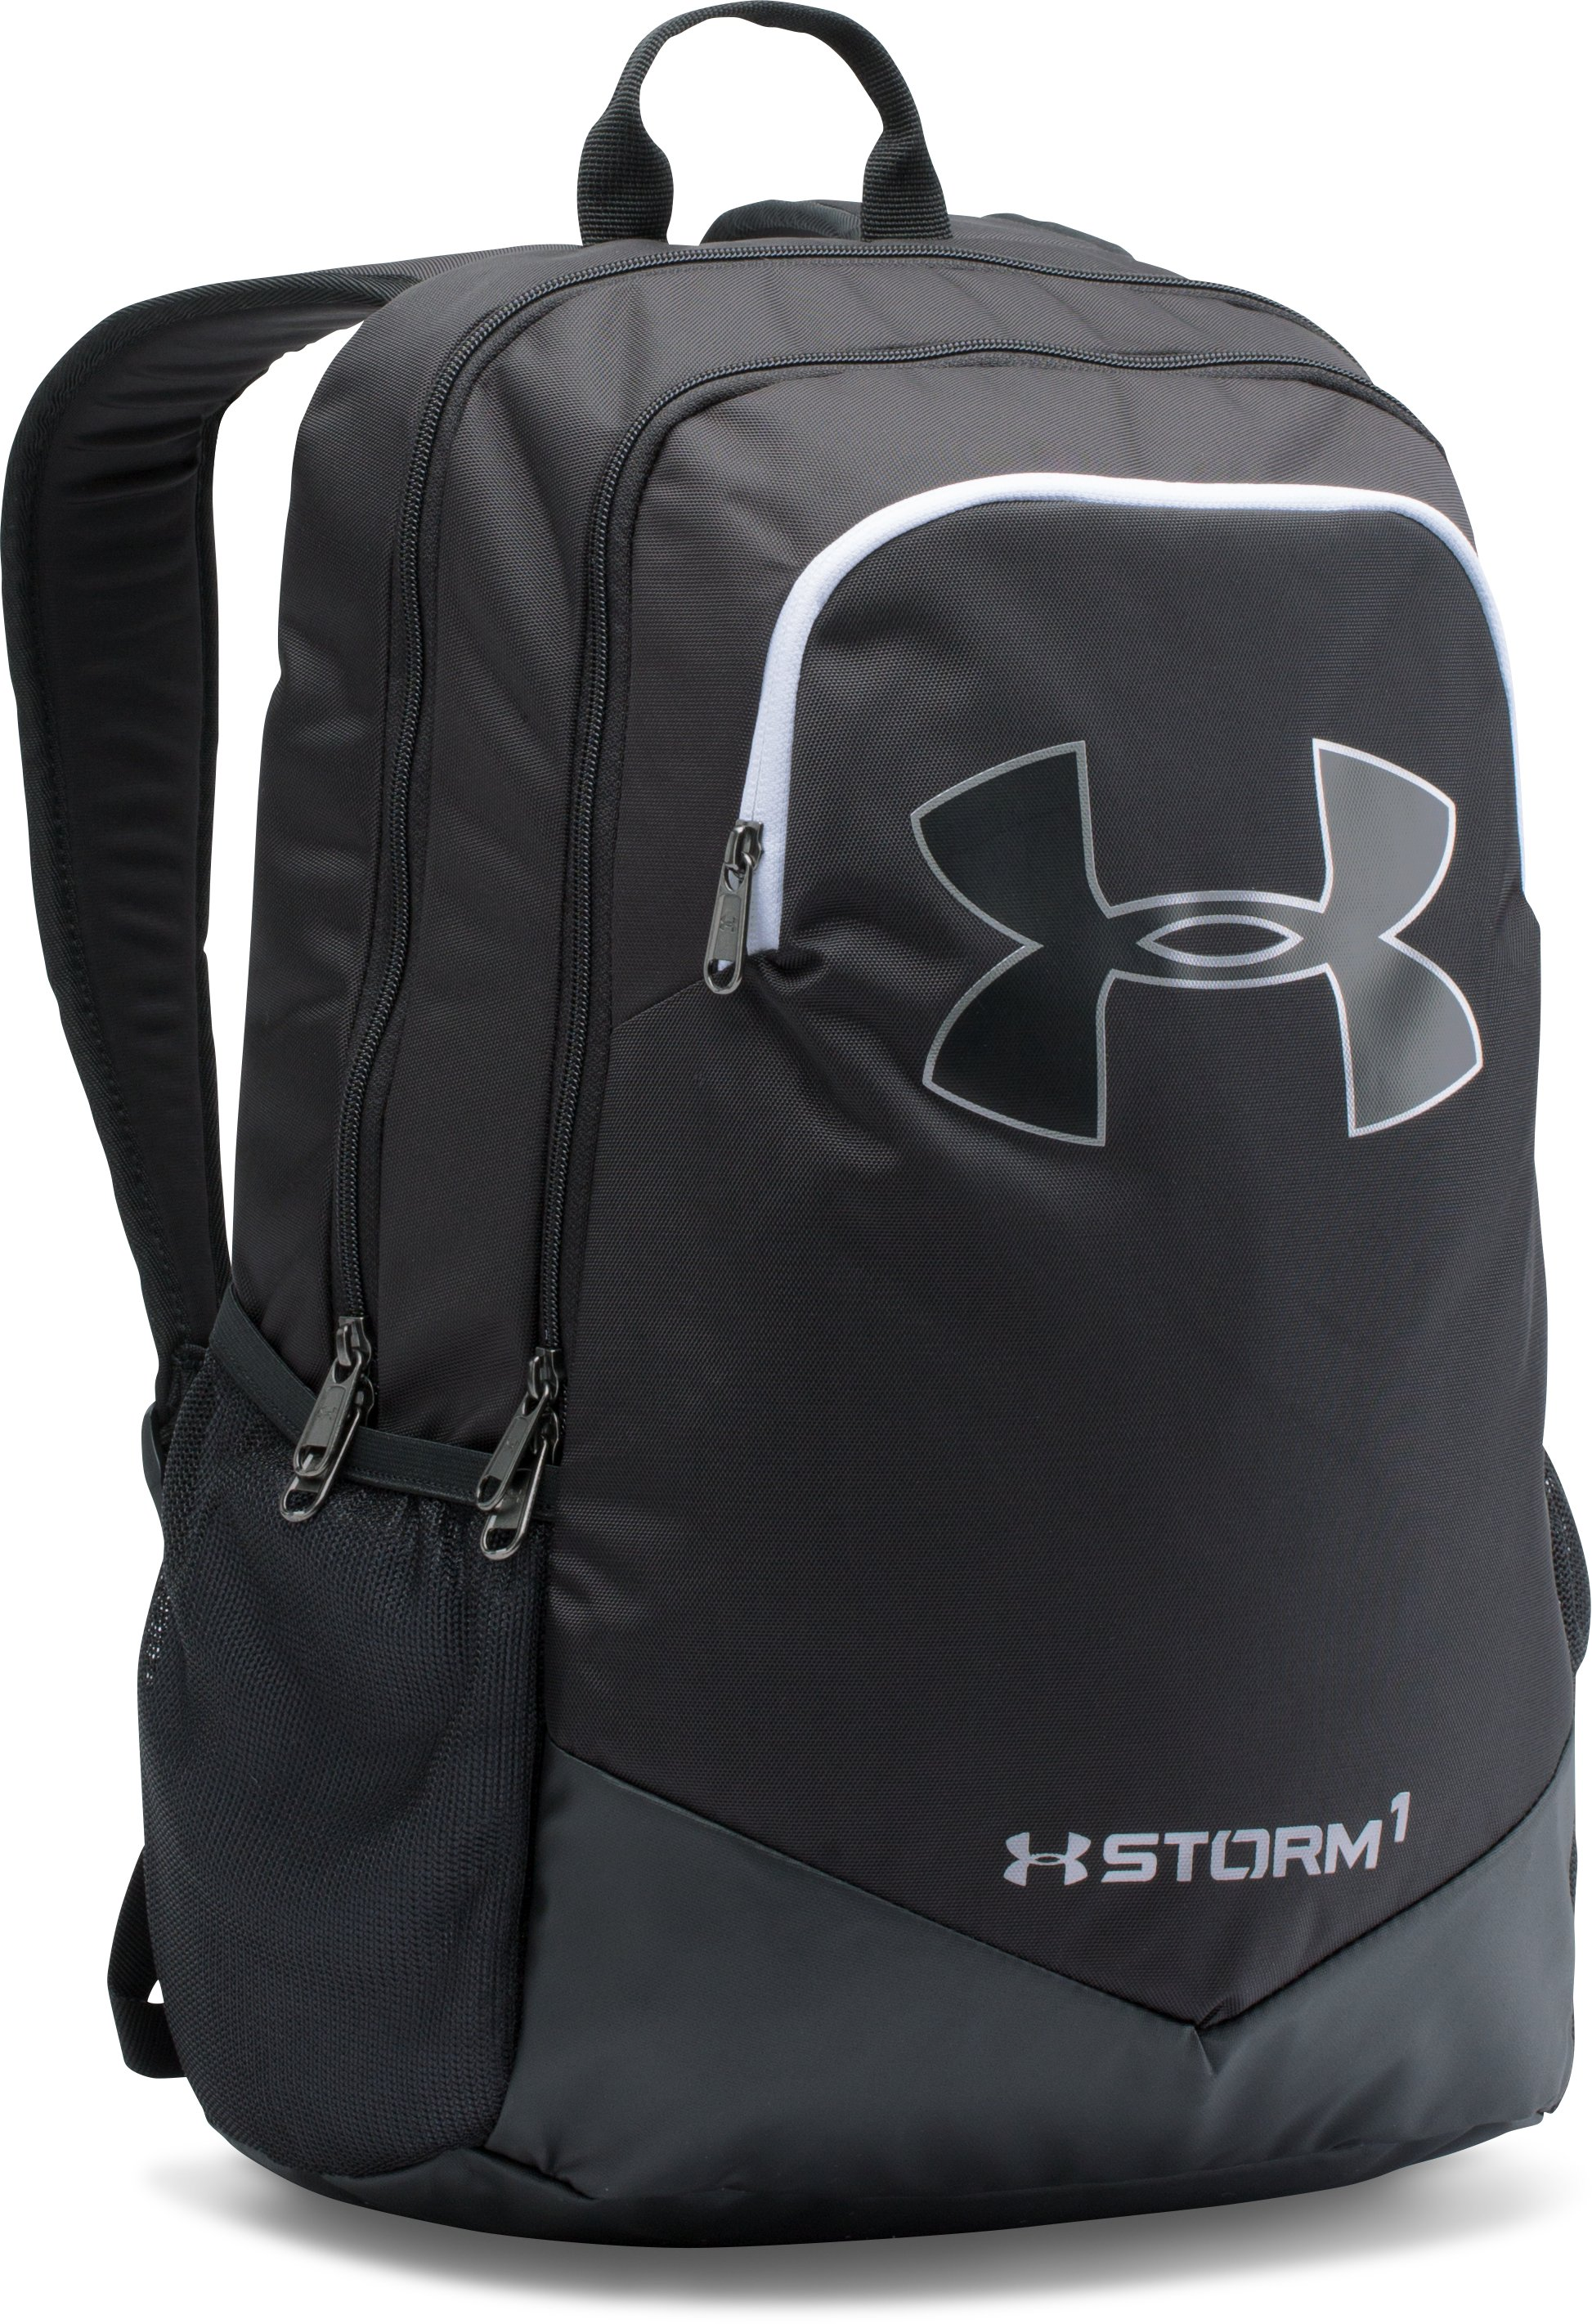 little kids backpacks UA Storm Scrimmage Backpack This is an amazing bookbag...Durable with good space....Great for school